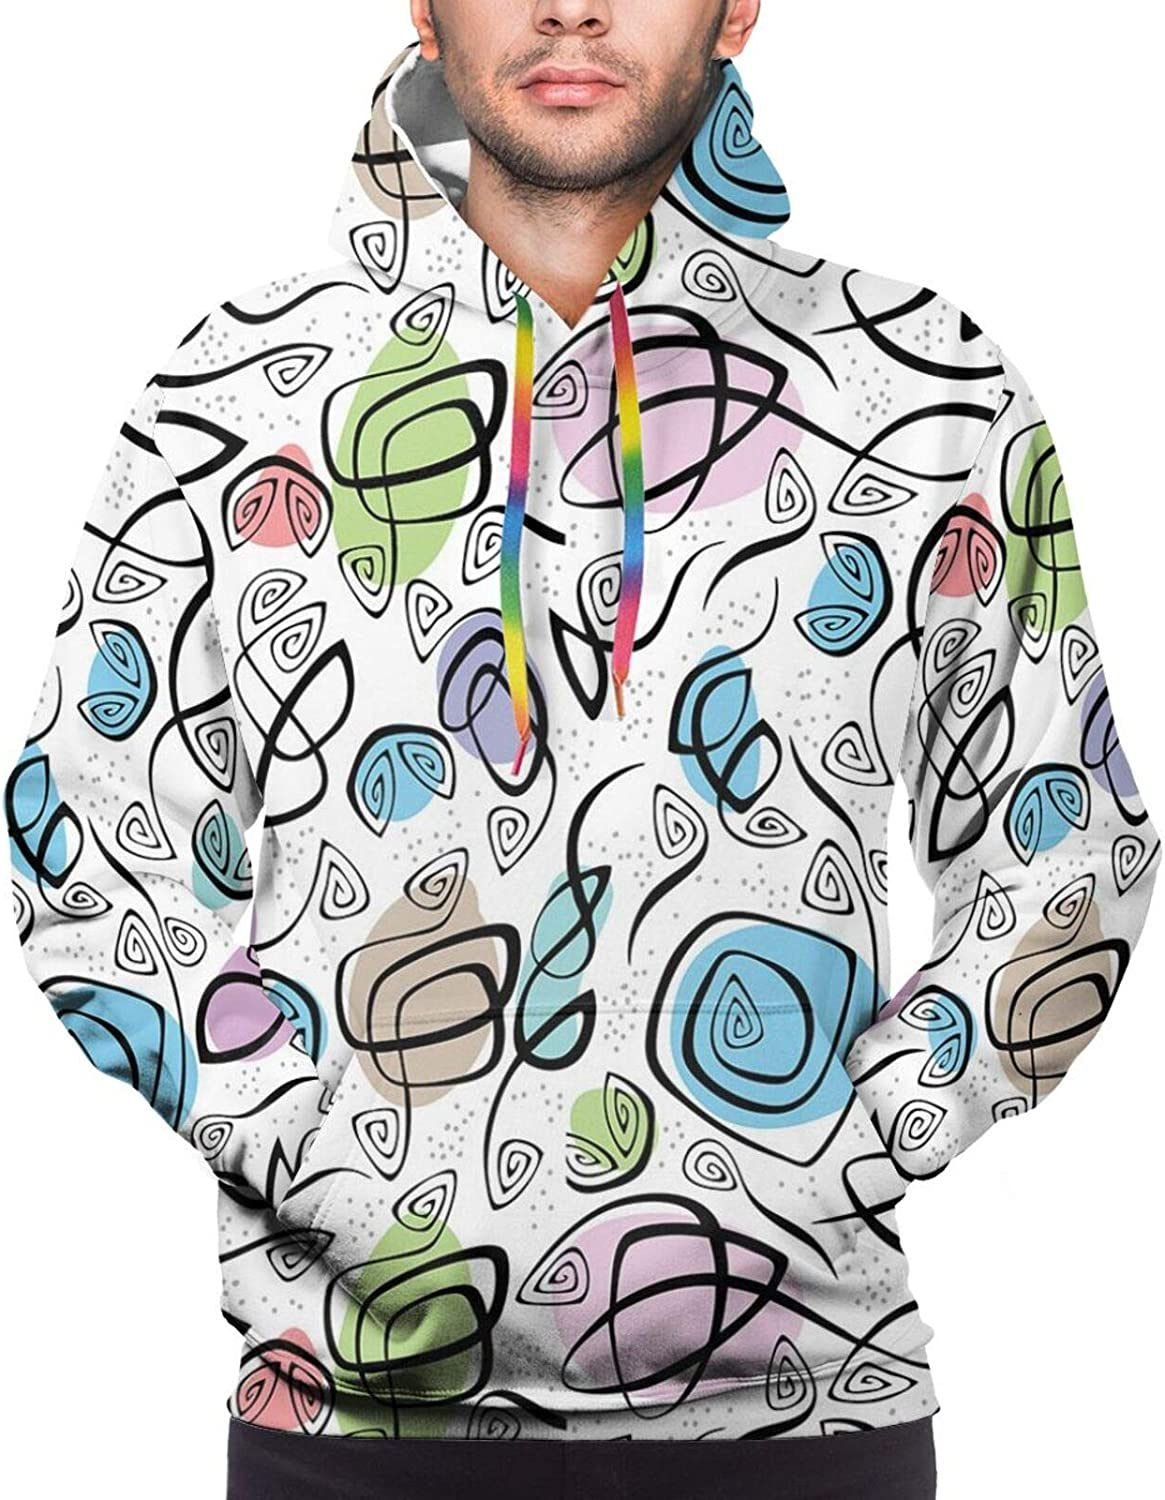 Men's Hoodies Sweatshirts,Abstract Lined Background with Pastel Leaves and Flowers Retro Inspirations